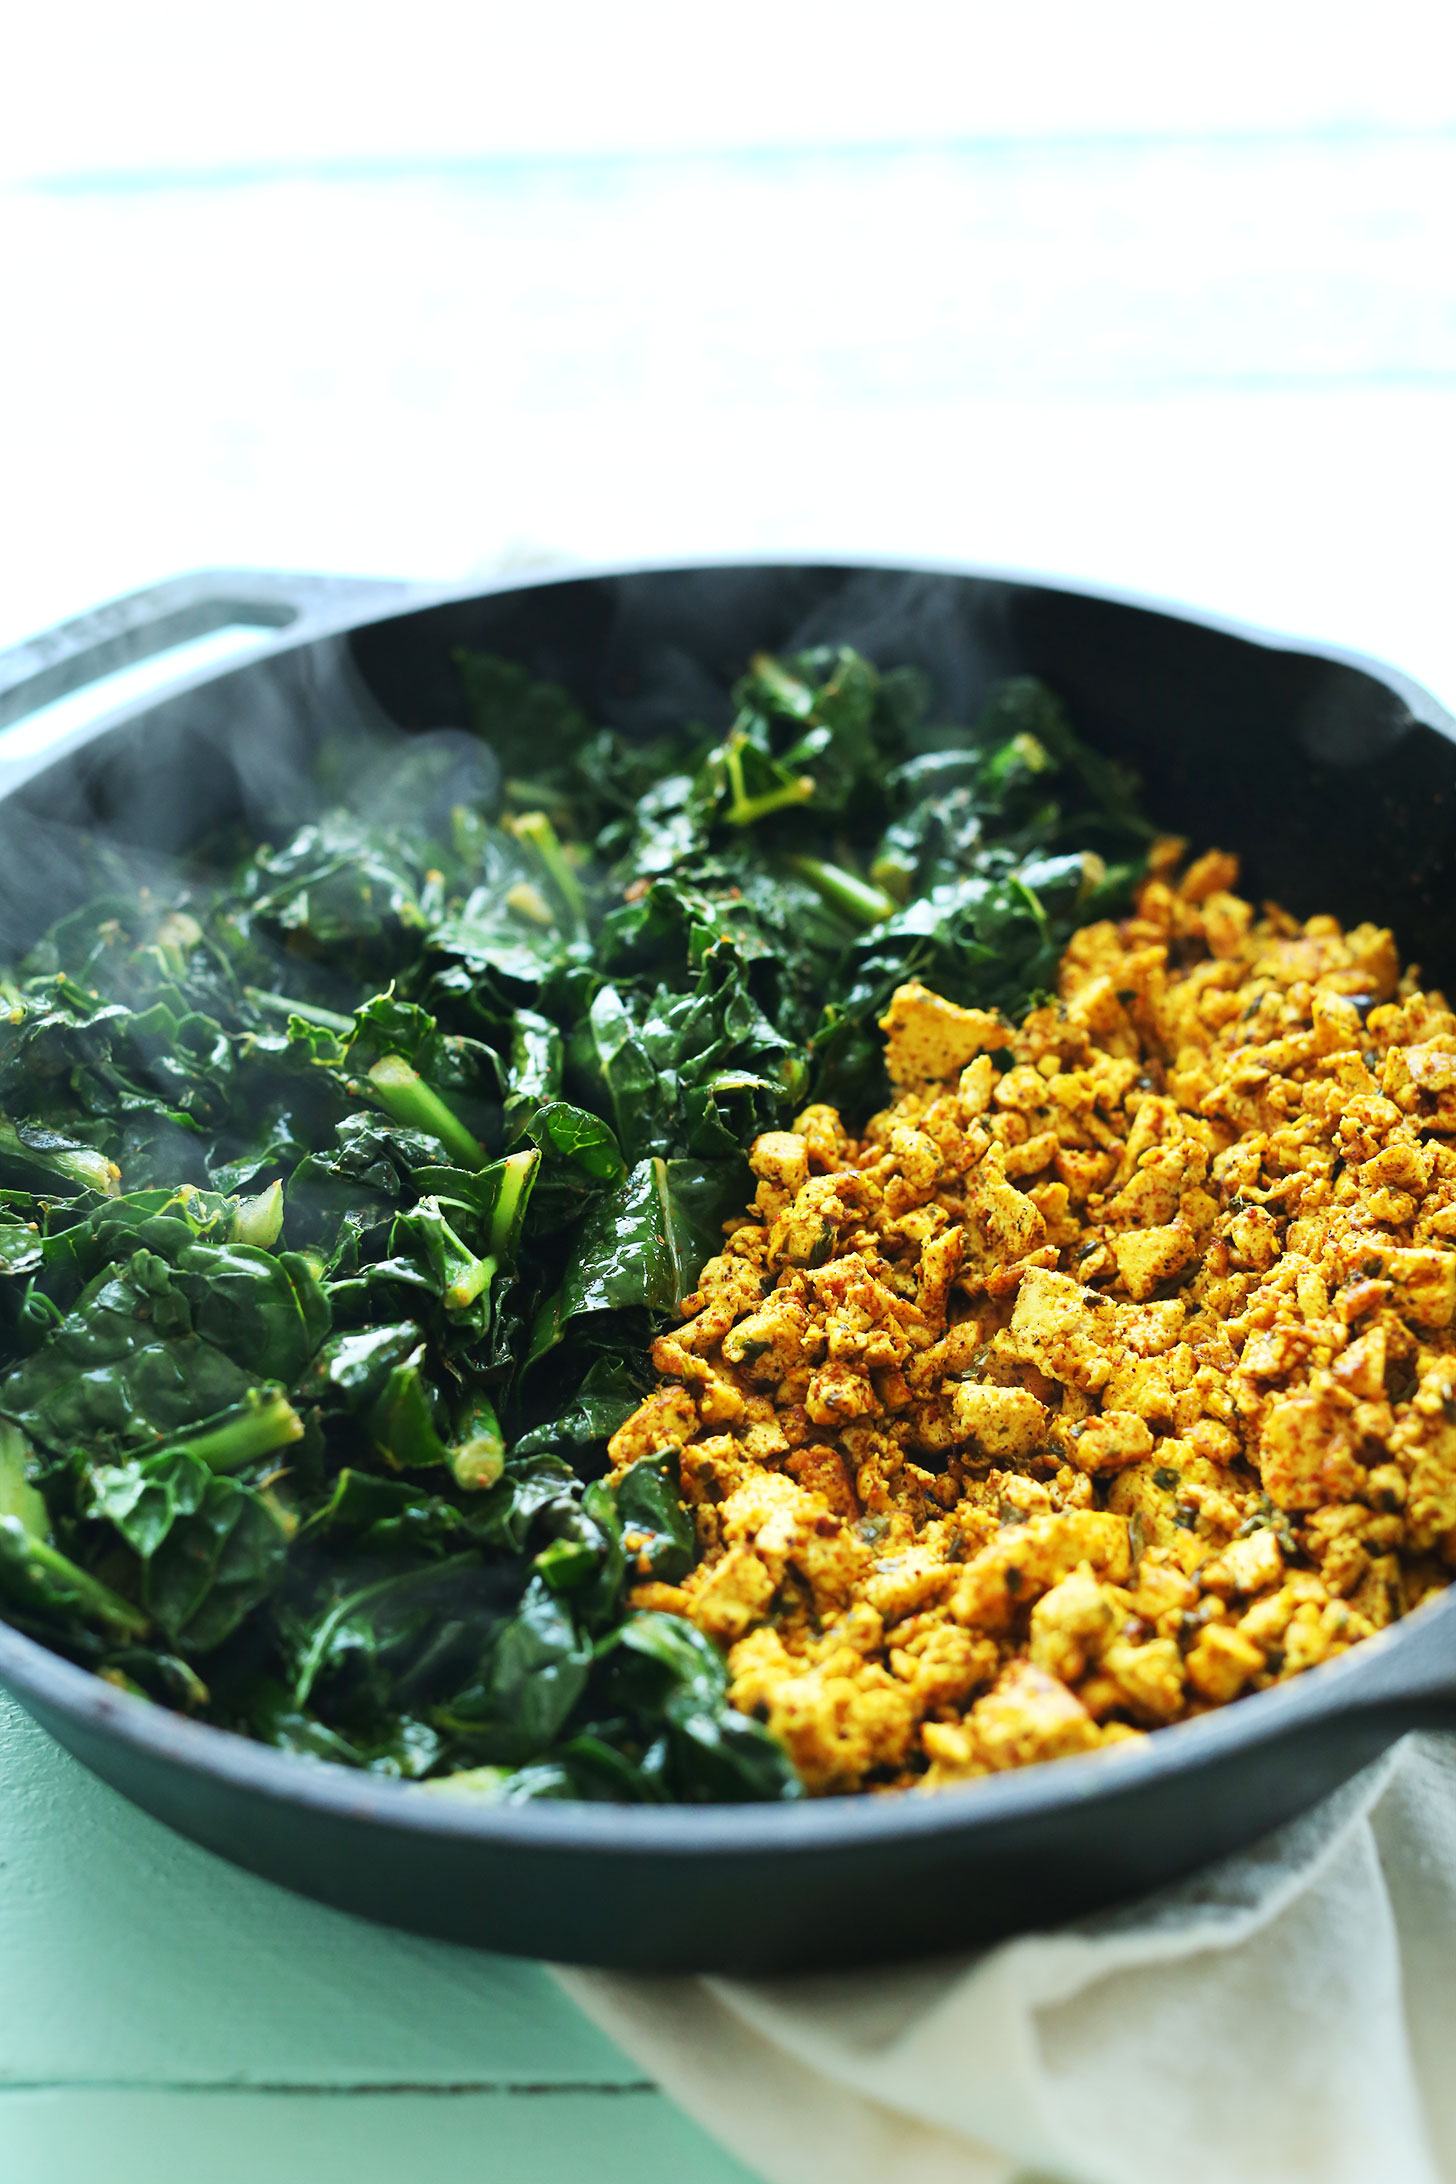 Cooking kale and tofu in a cast-iron skillet for our Savory Tofu Scramble recipe